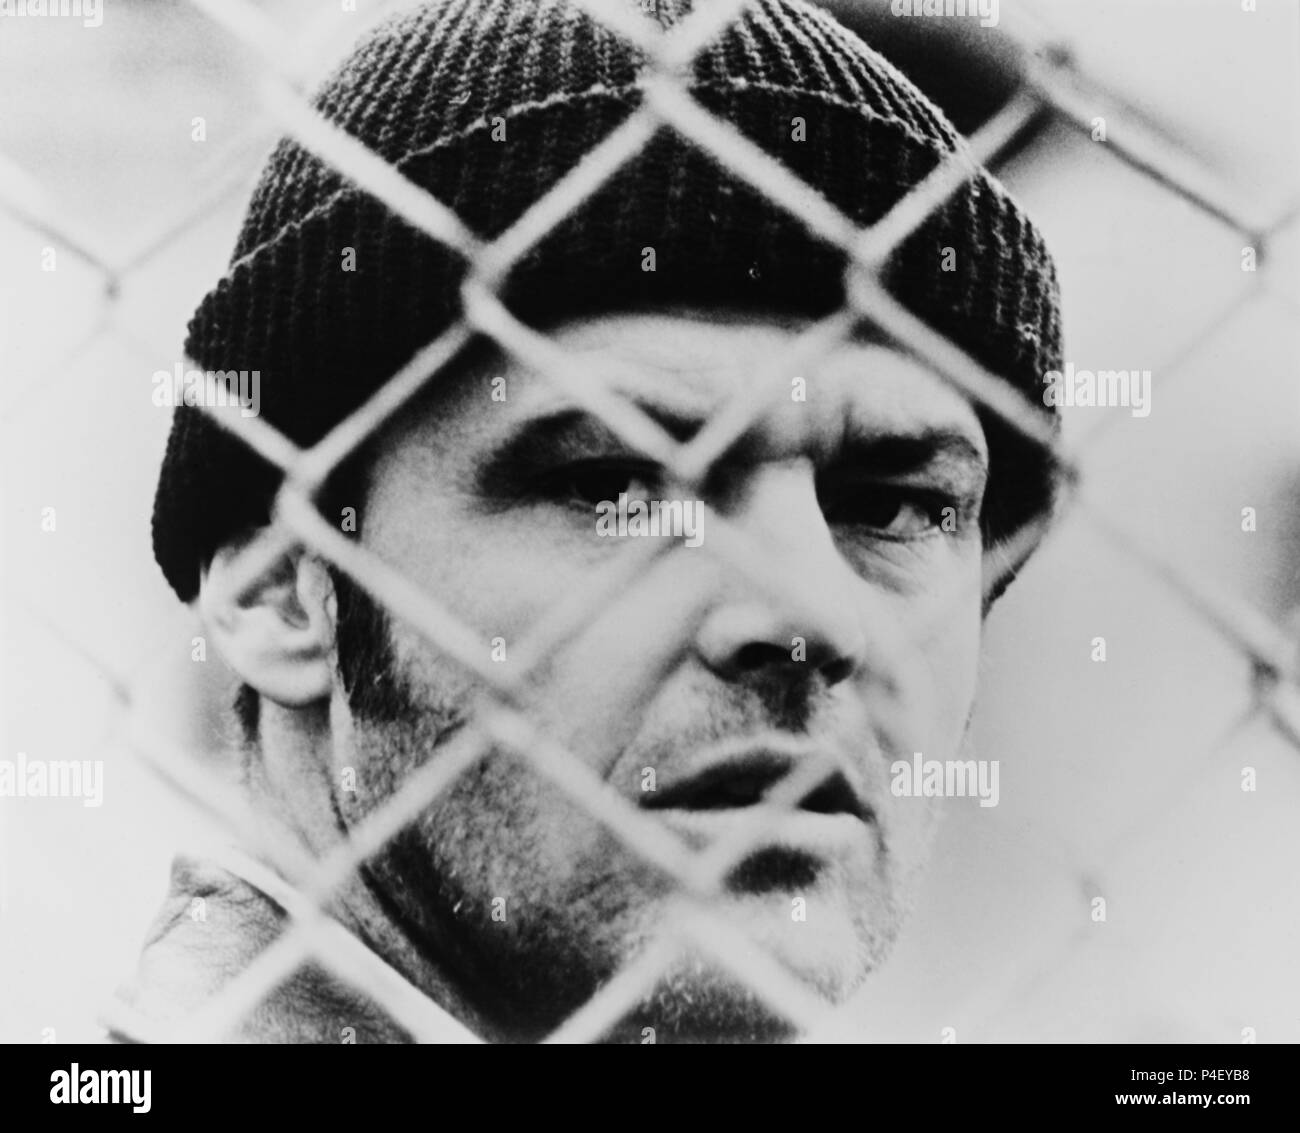 Original Film Title: ONE FLEW OVER THE CUCKOO'S NEST.  English Title: ONE FLEW OVER THE CUCKOO'S NEST.  Film Director: MILOS FORMAN.  Year: 1975.  Stars: JACK NICHOLSON. Credit: UNITED ARTISTS / Album - Stock Image